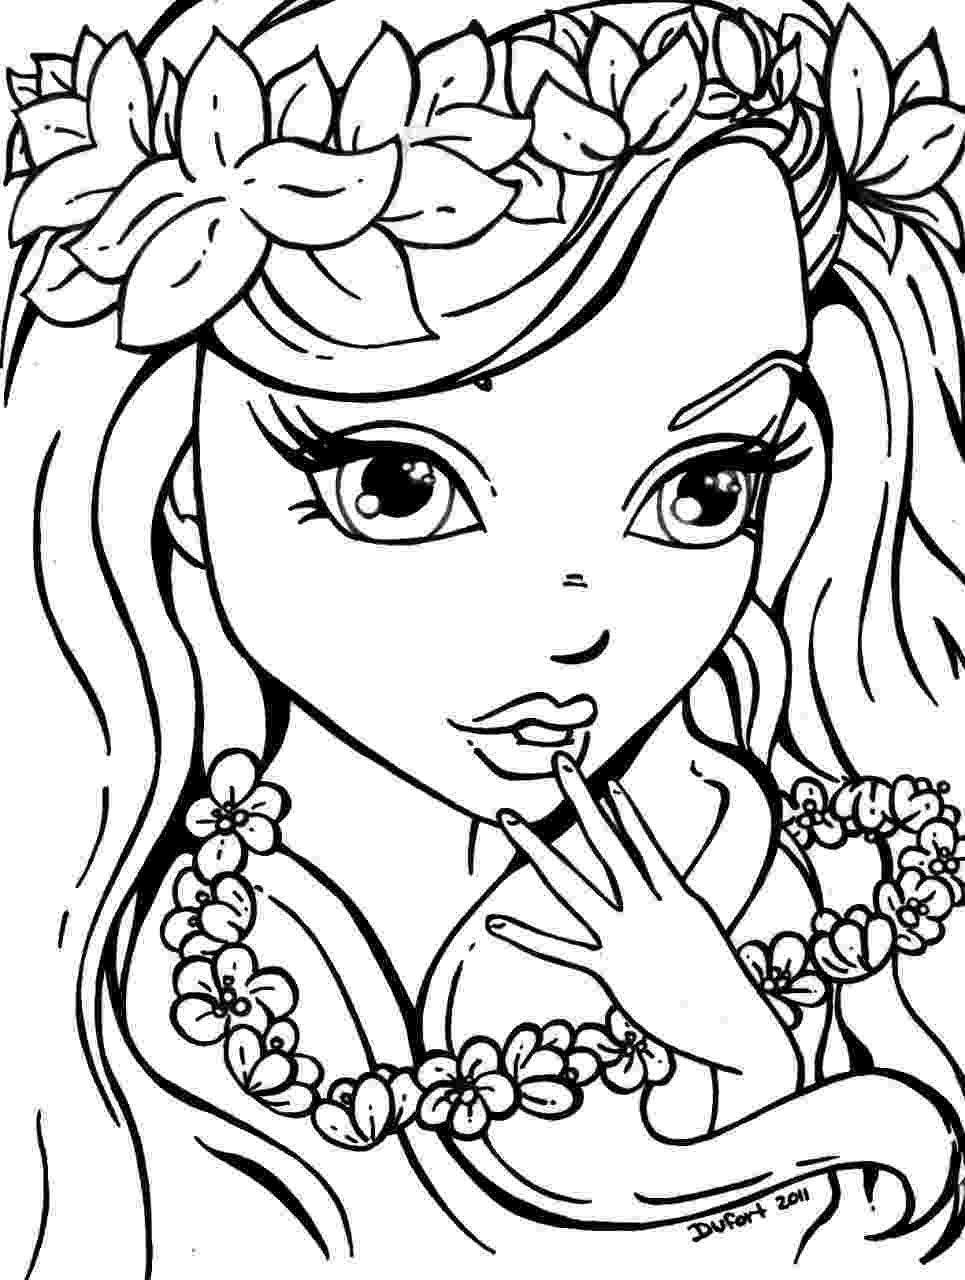 girl pictures to color and print coloring pages for girls best coloring pages for kids color and to girl pictures print